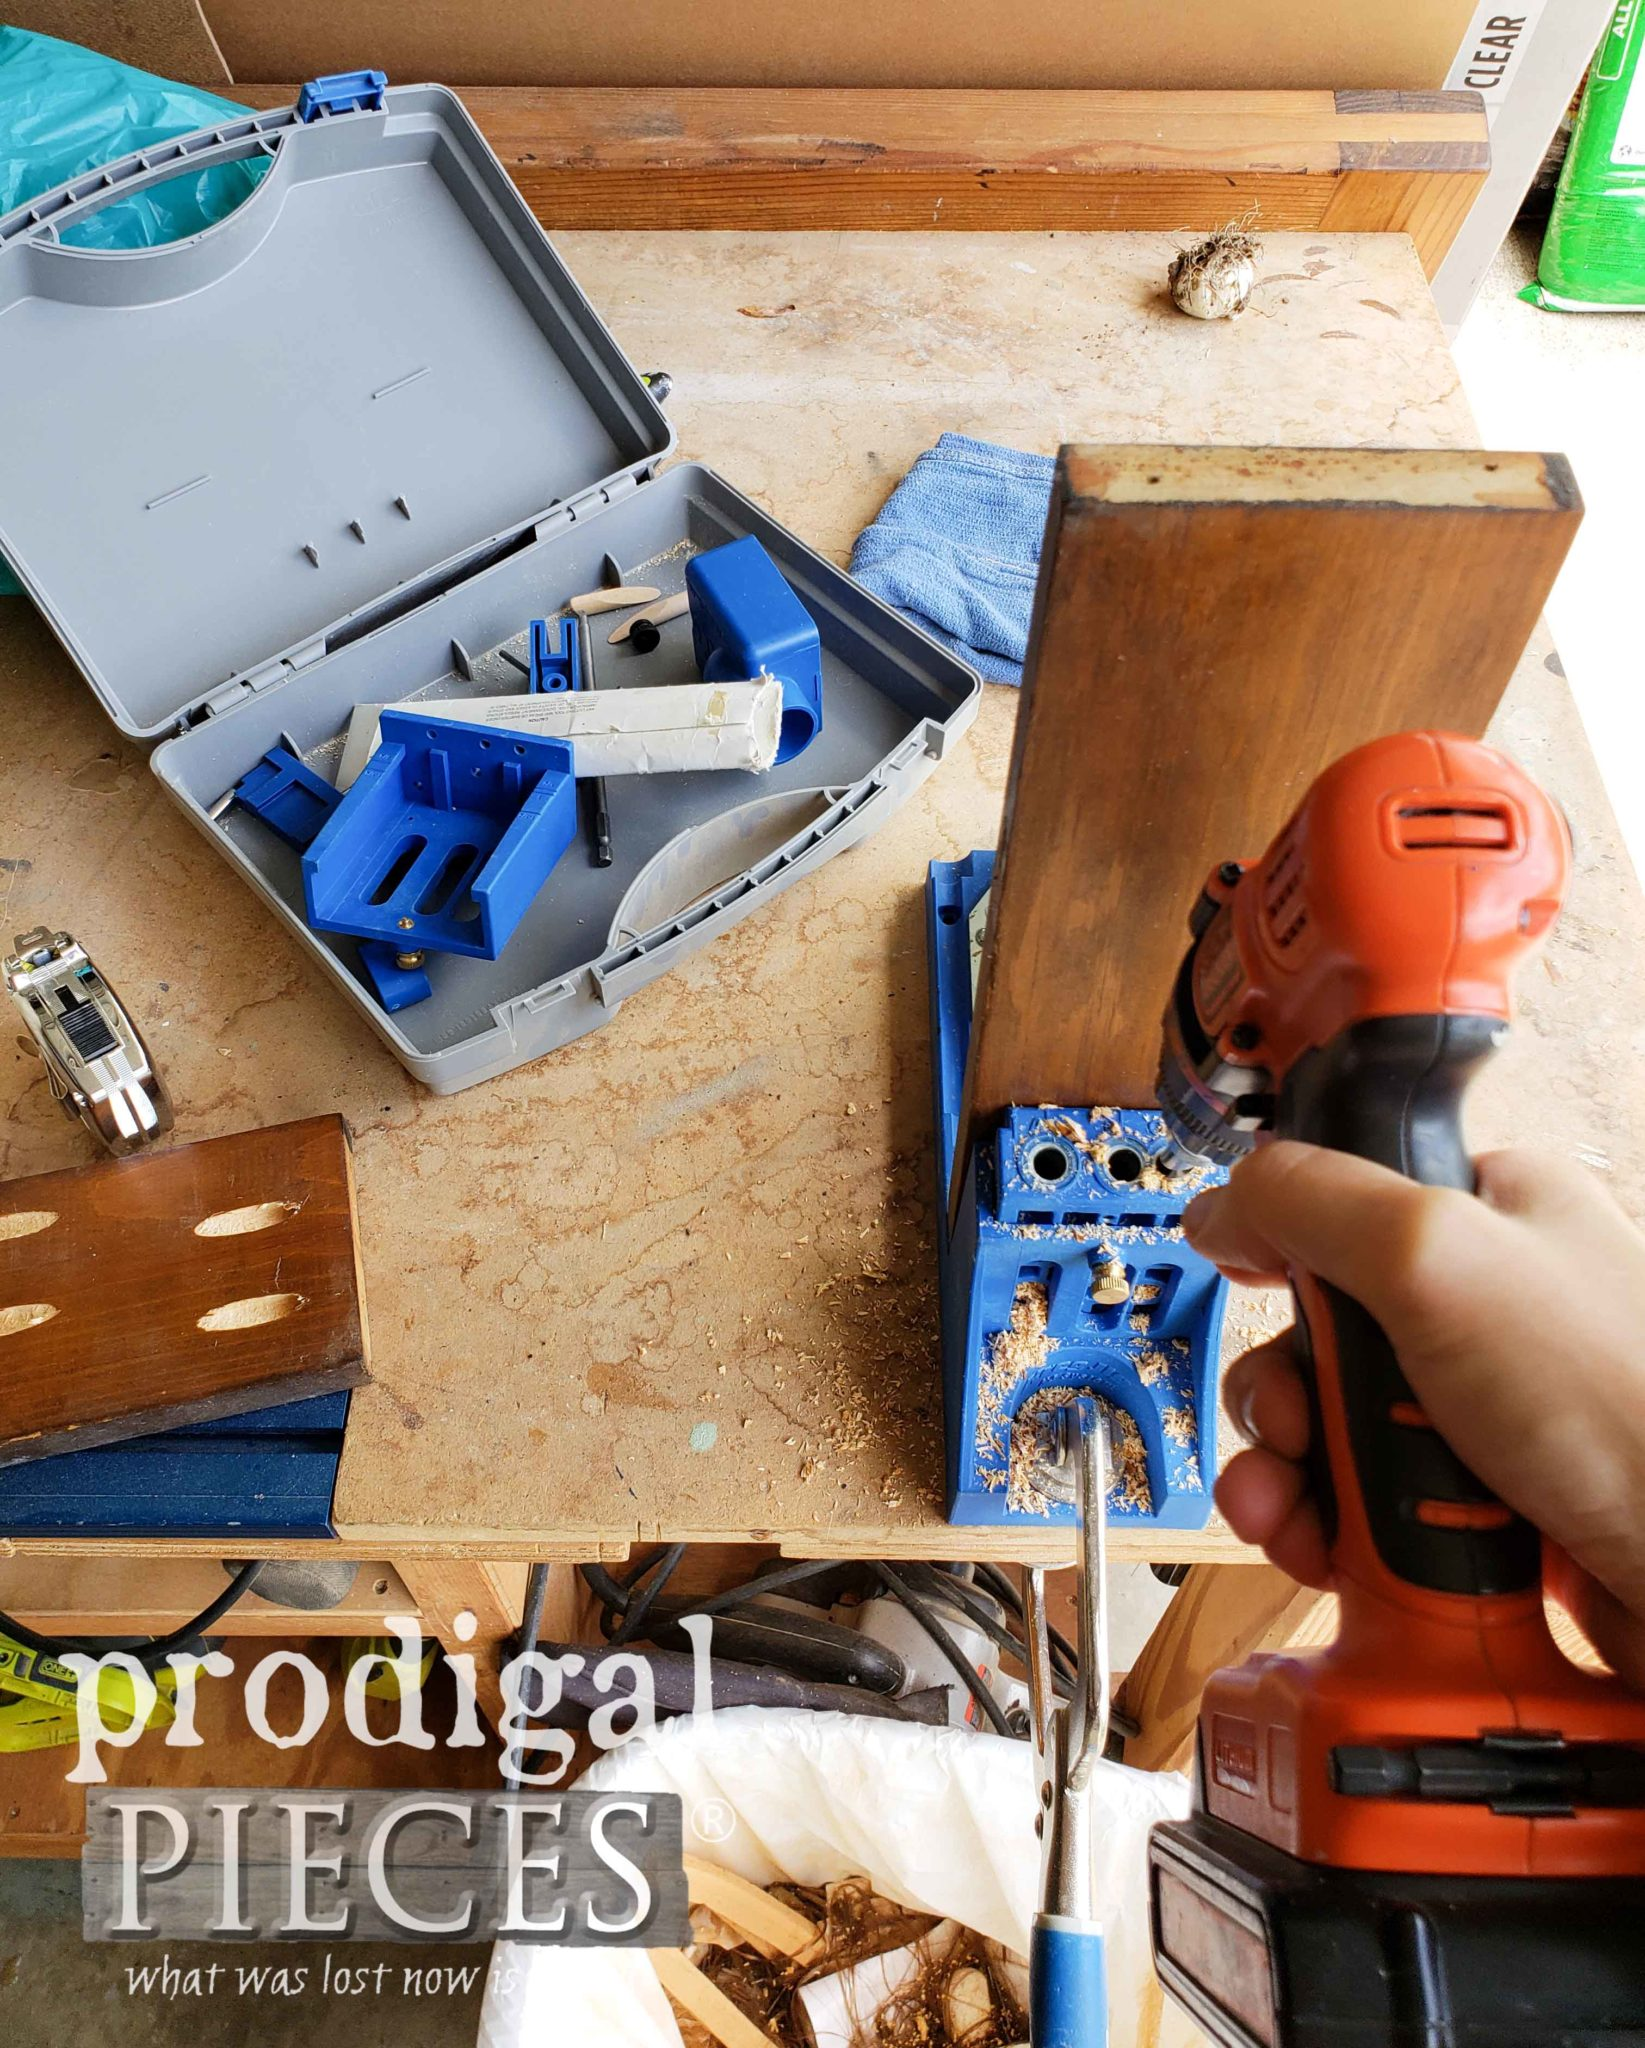 Kreg Pocket Hole Jig to Build Anything | prodigalpieces.com